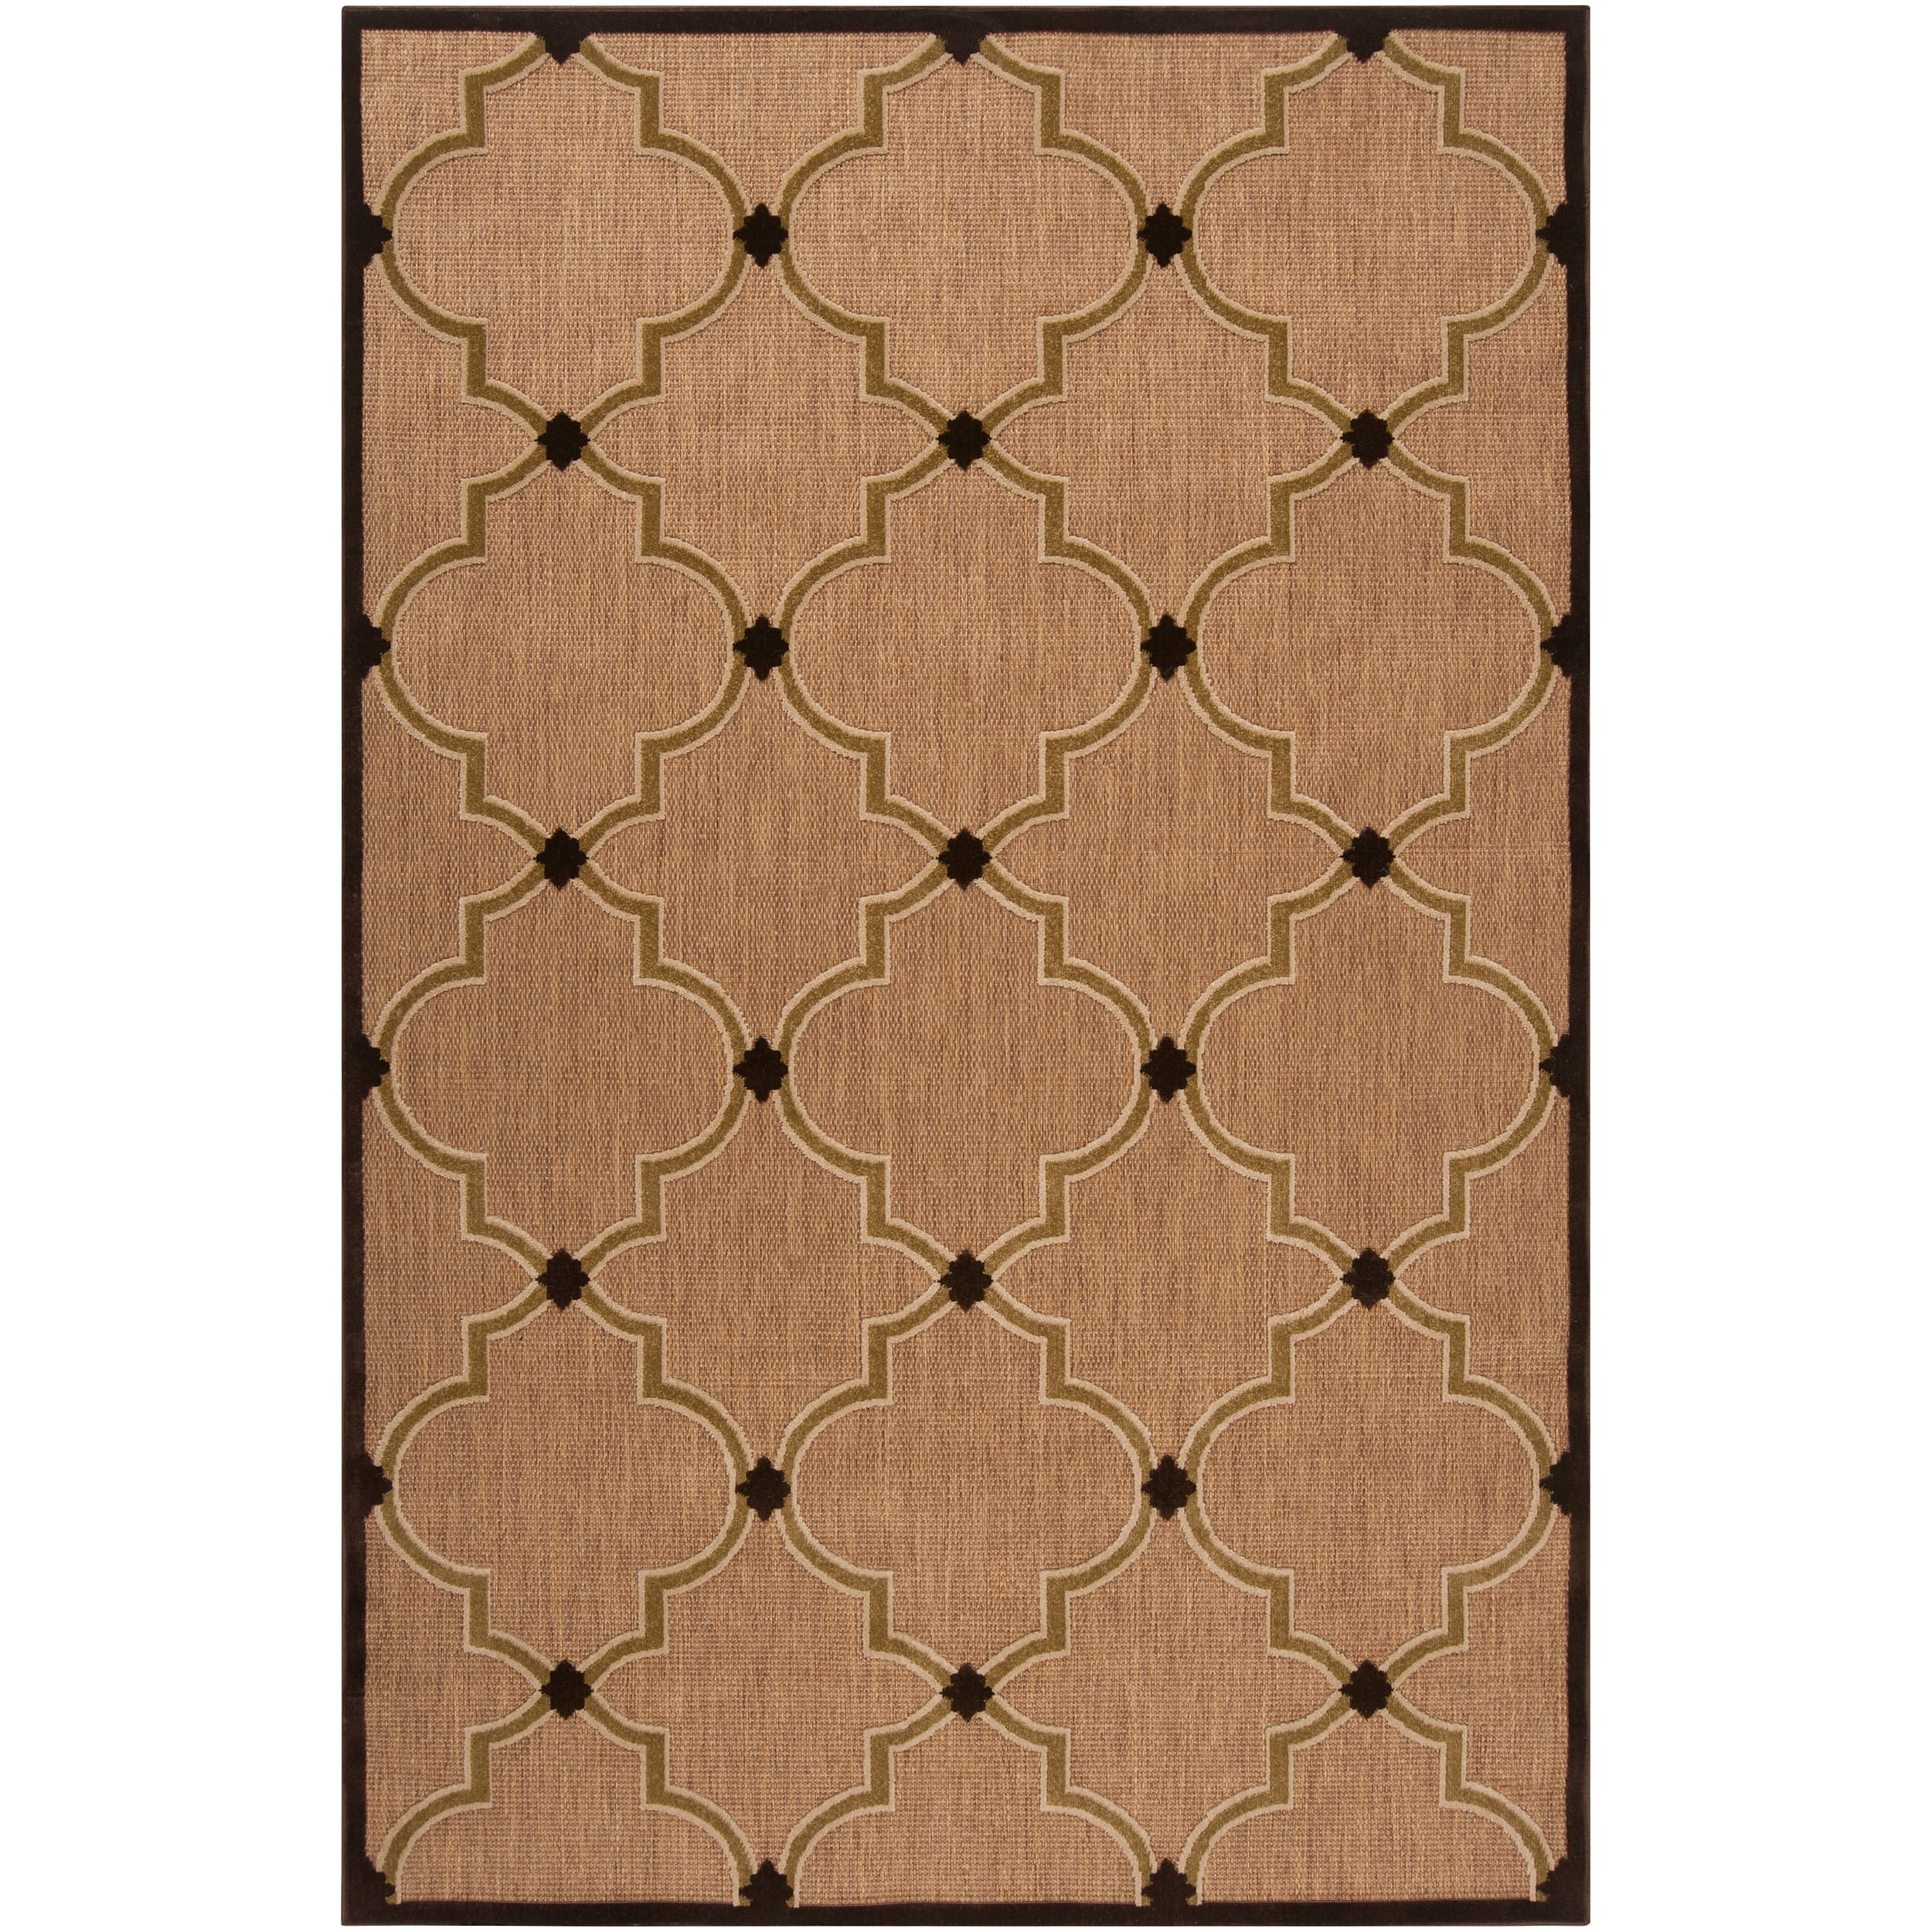 Woven Tan Remington Indoor Outdoor Moroccan Lattice Rug 3